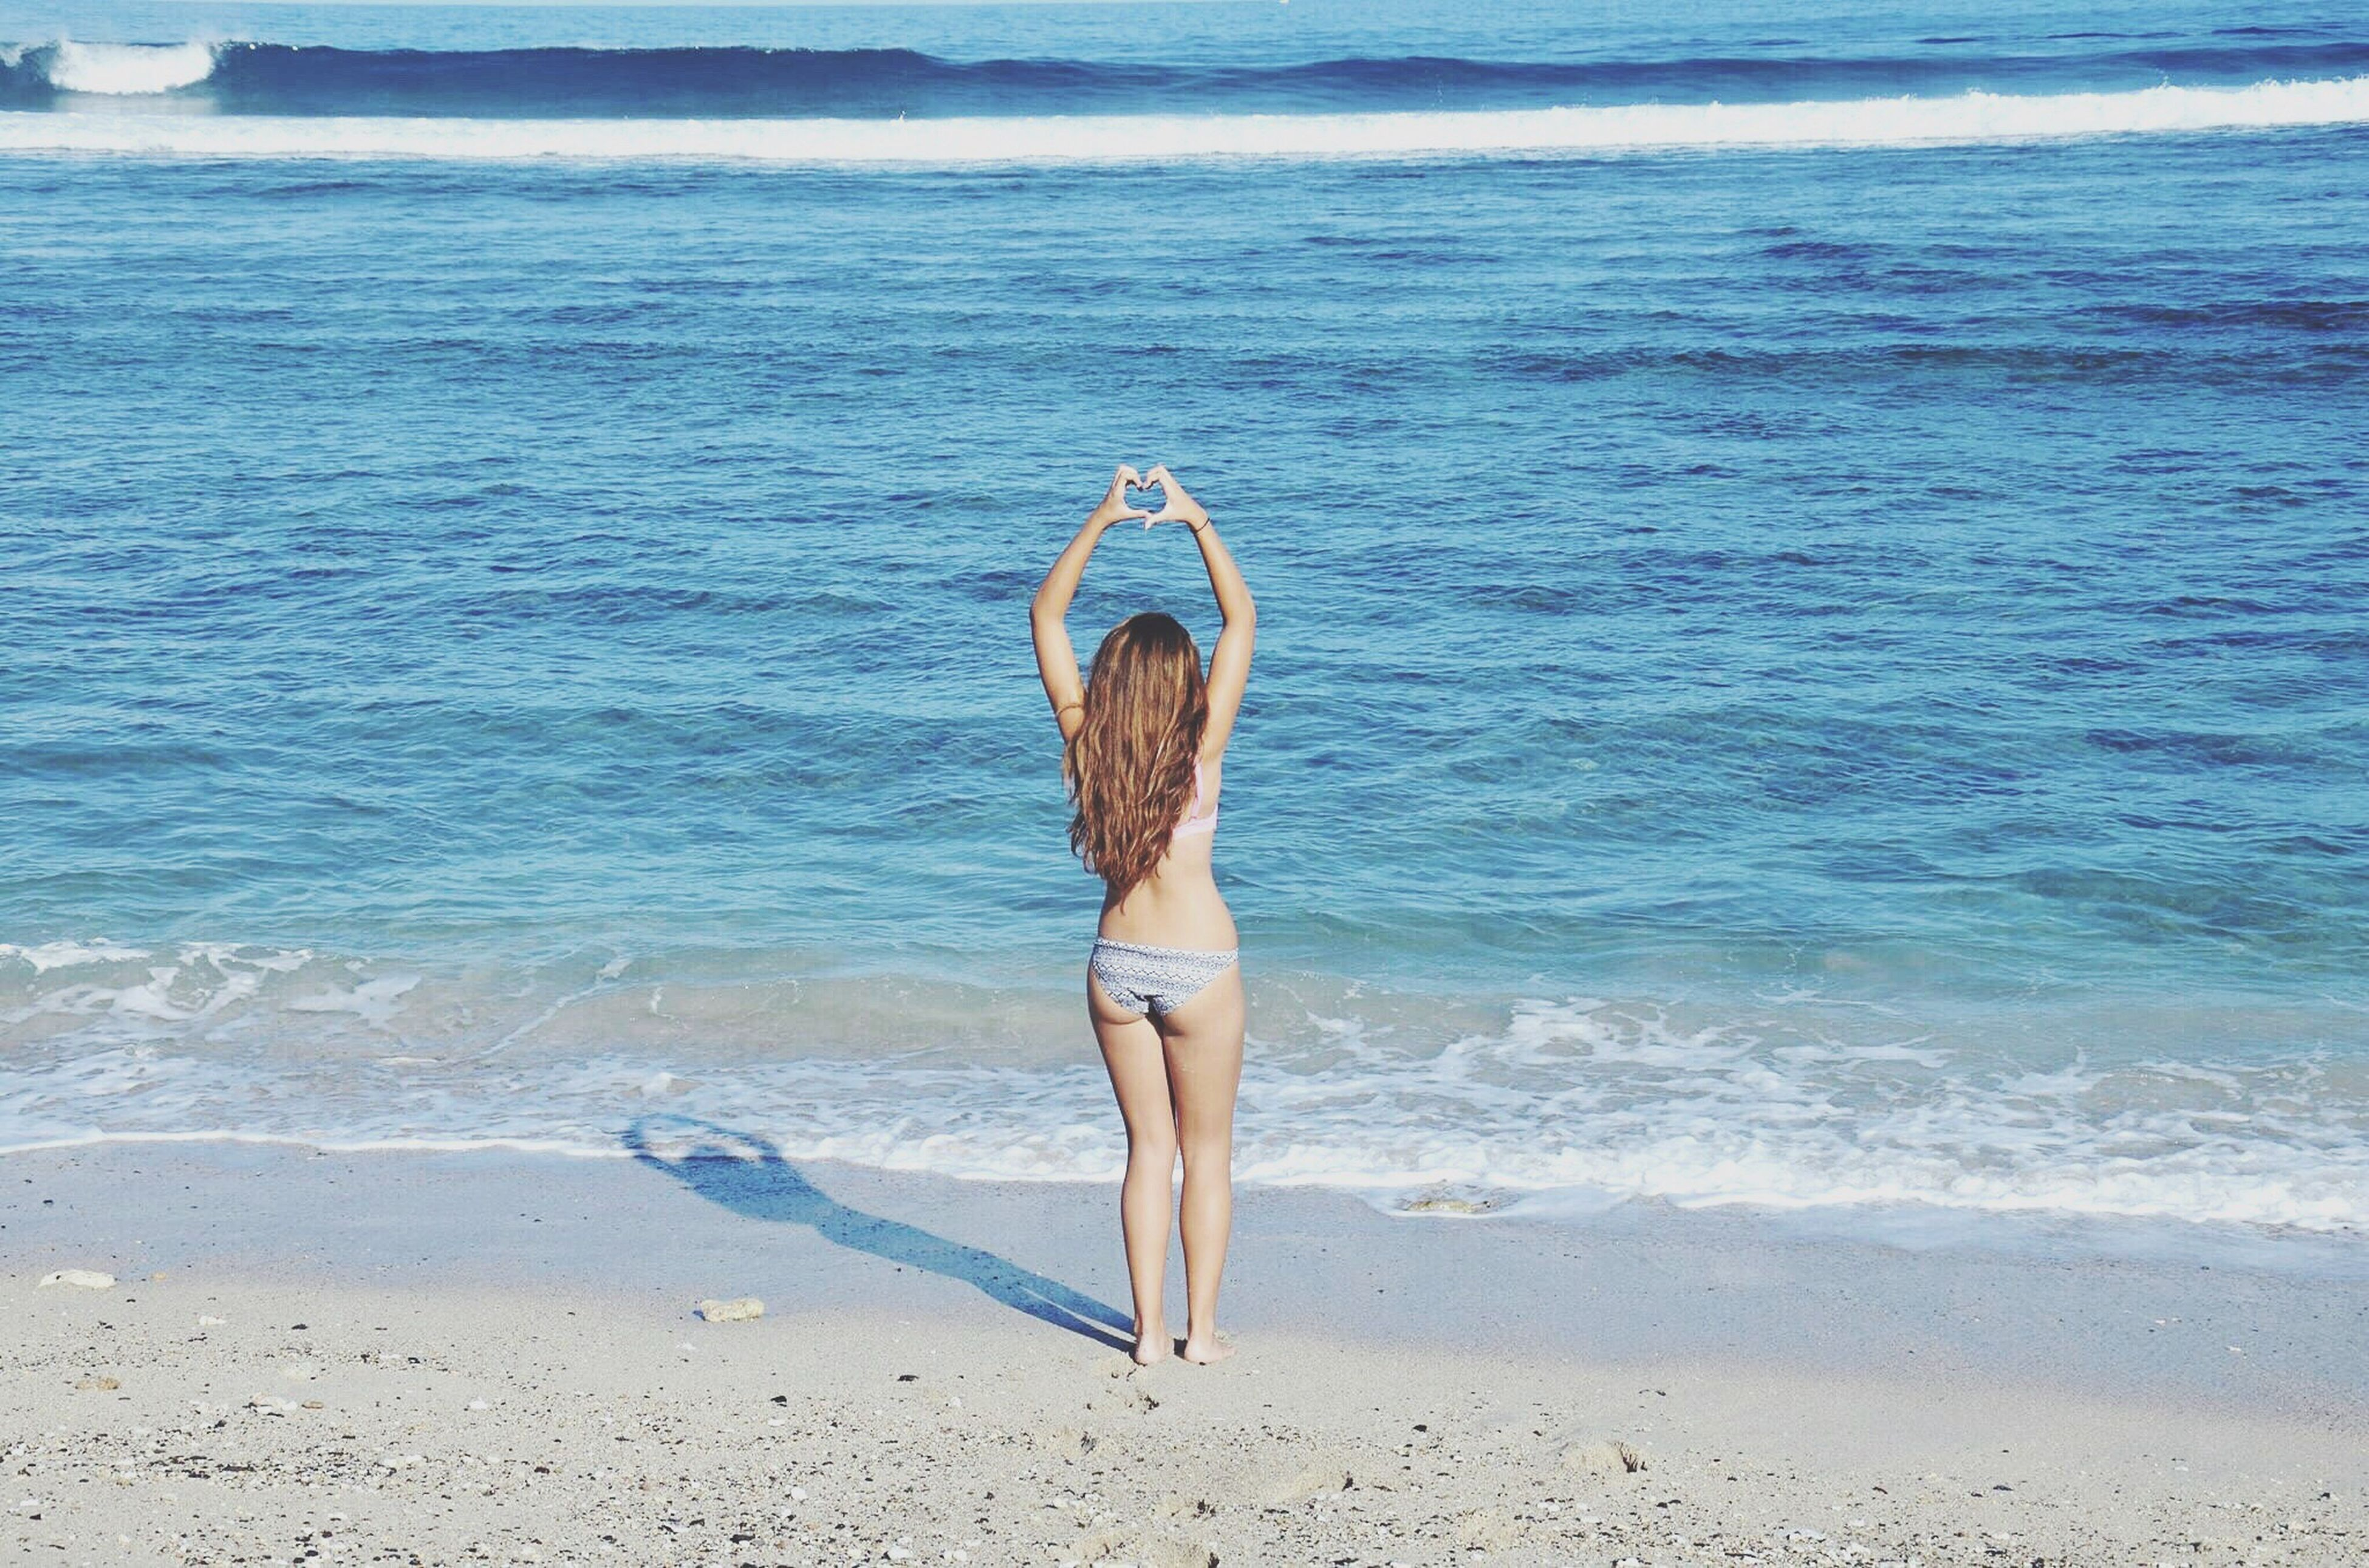 sea, water, beach, full length, lifestyles, leisure activity, young adult, standing, vacations, shore, young women, sand, casual clothing, rear view, tranquility, horizon over water, bikini, person